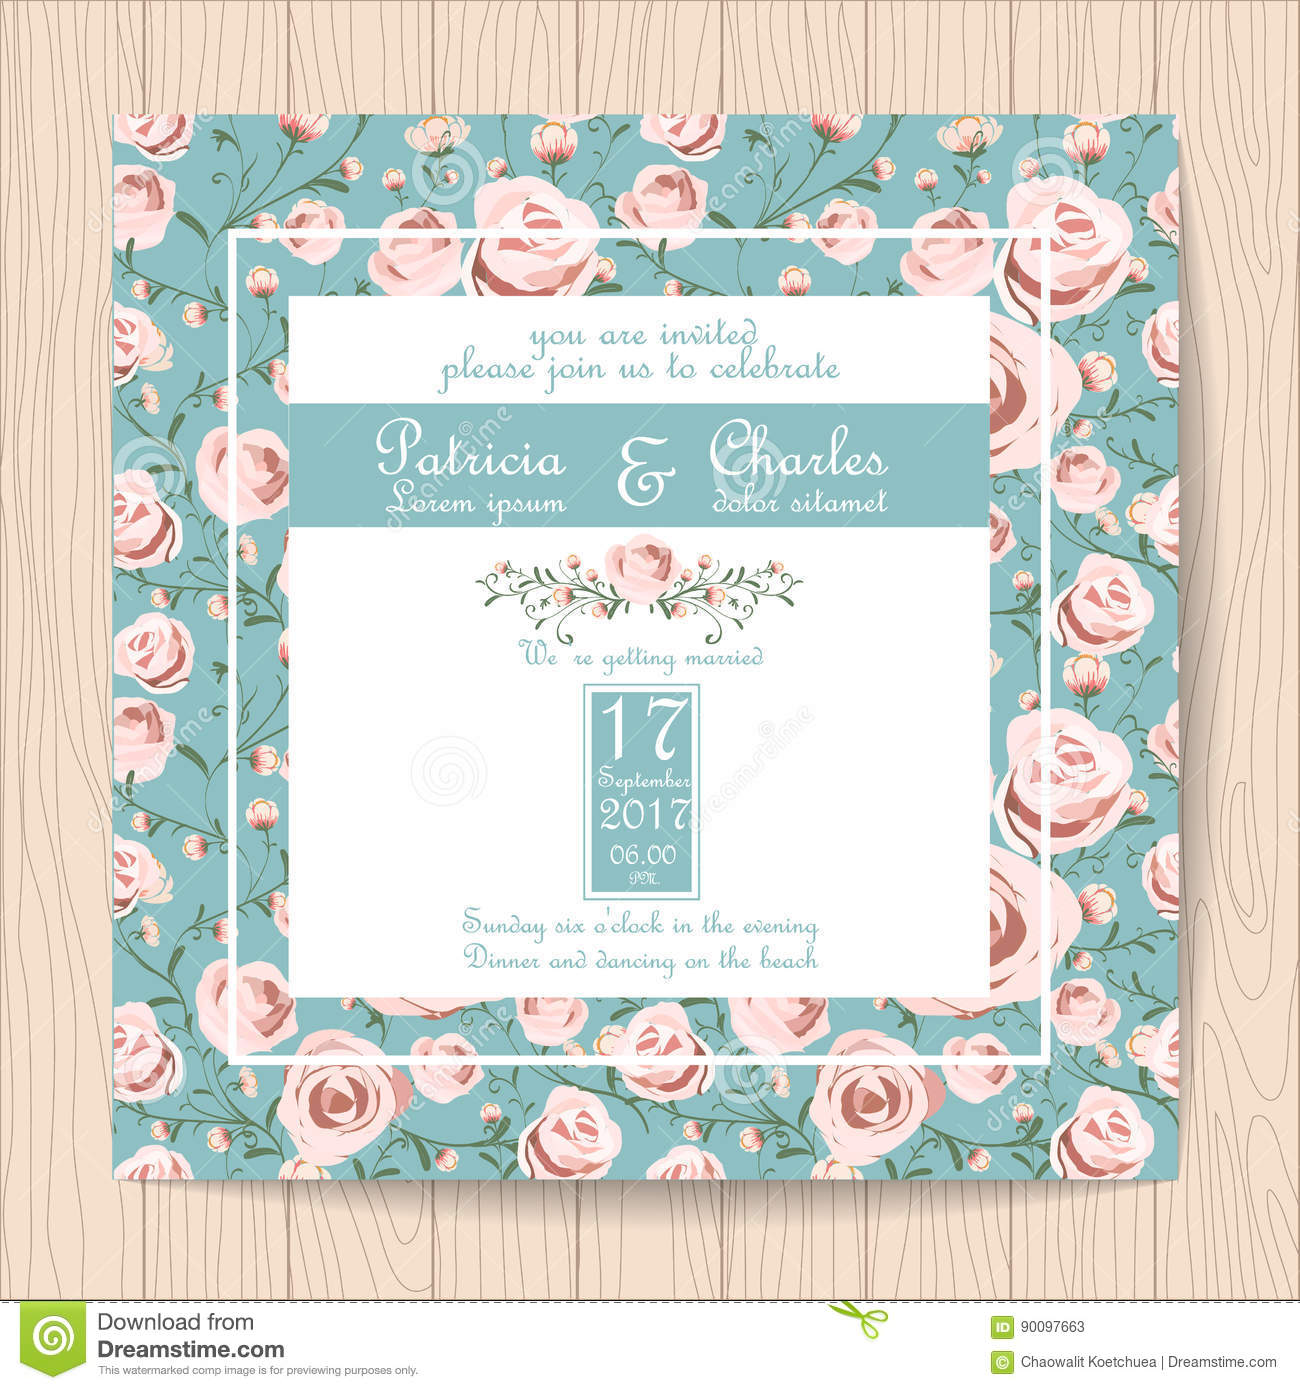 Wedding Invitation Card With Pink Rose Flower Pattern Templates ...